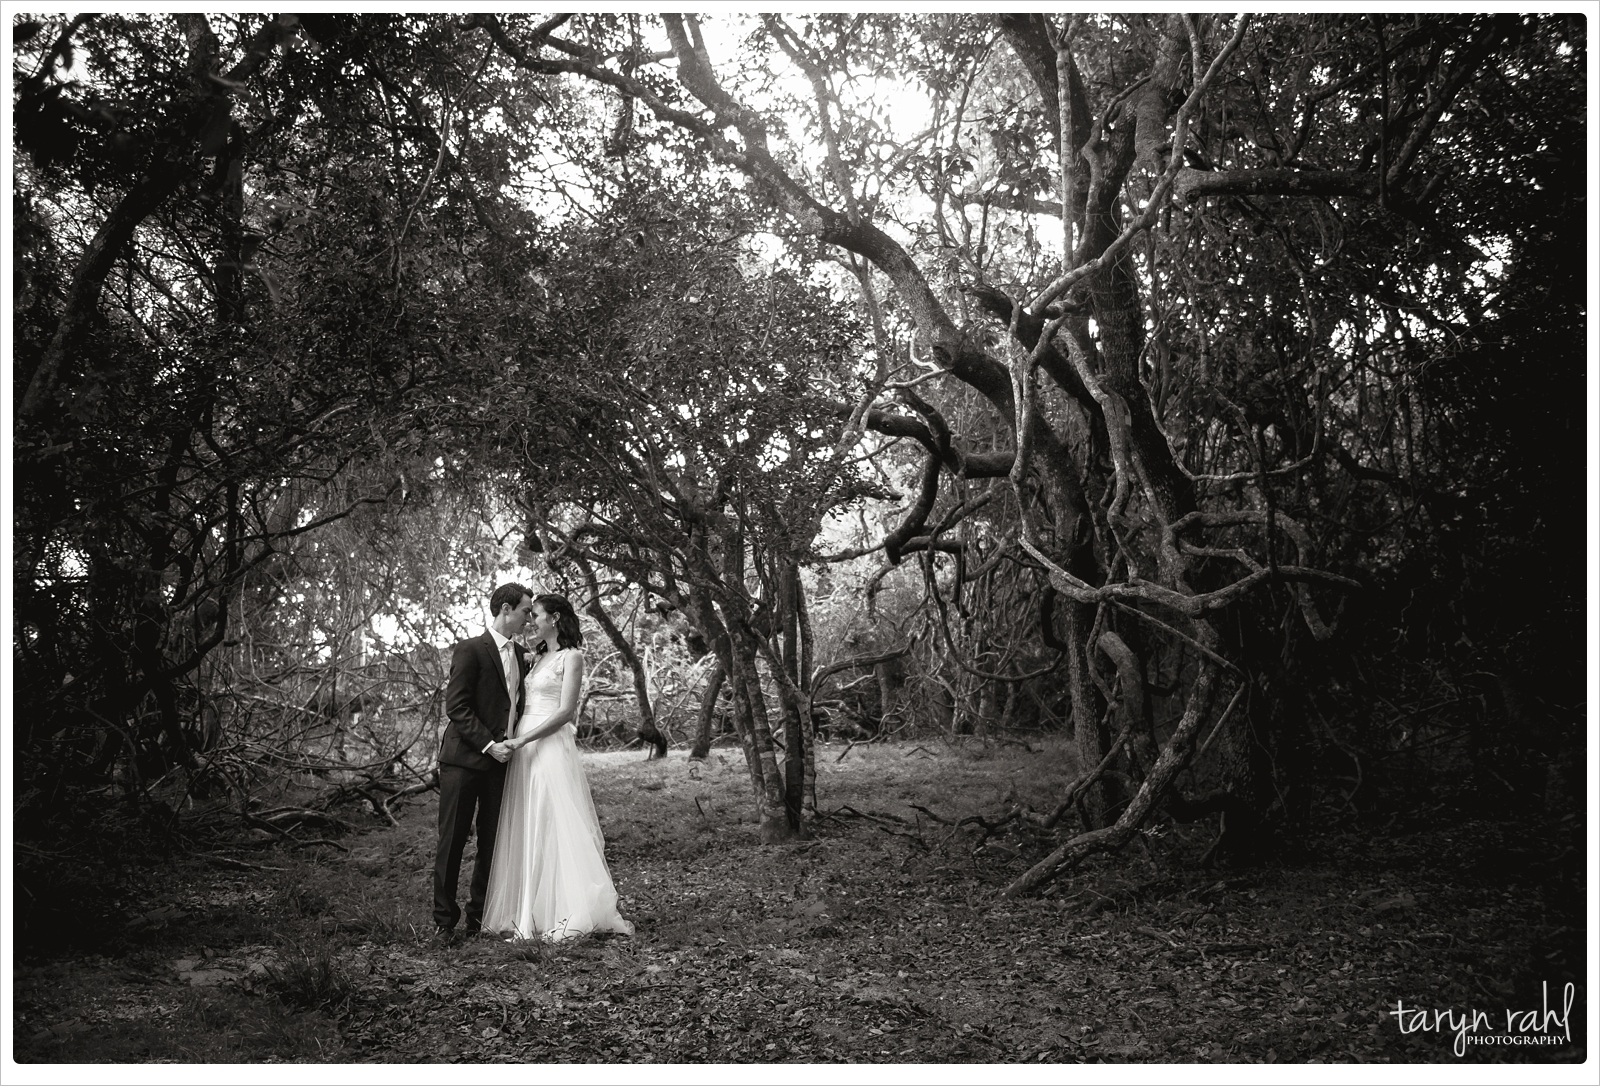 Megan and Justin | wedding at Oceana Reserve